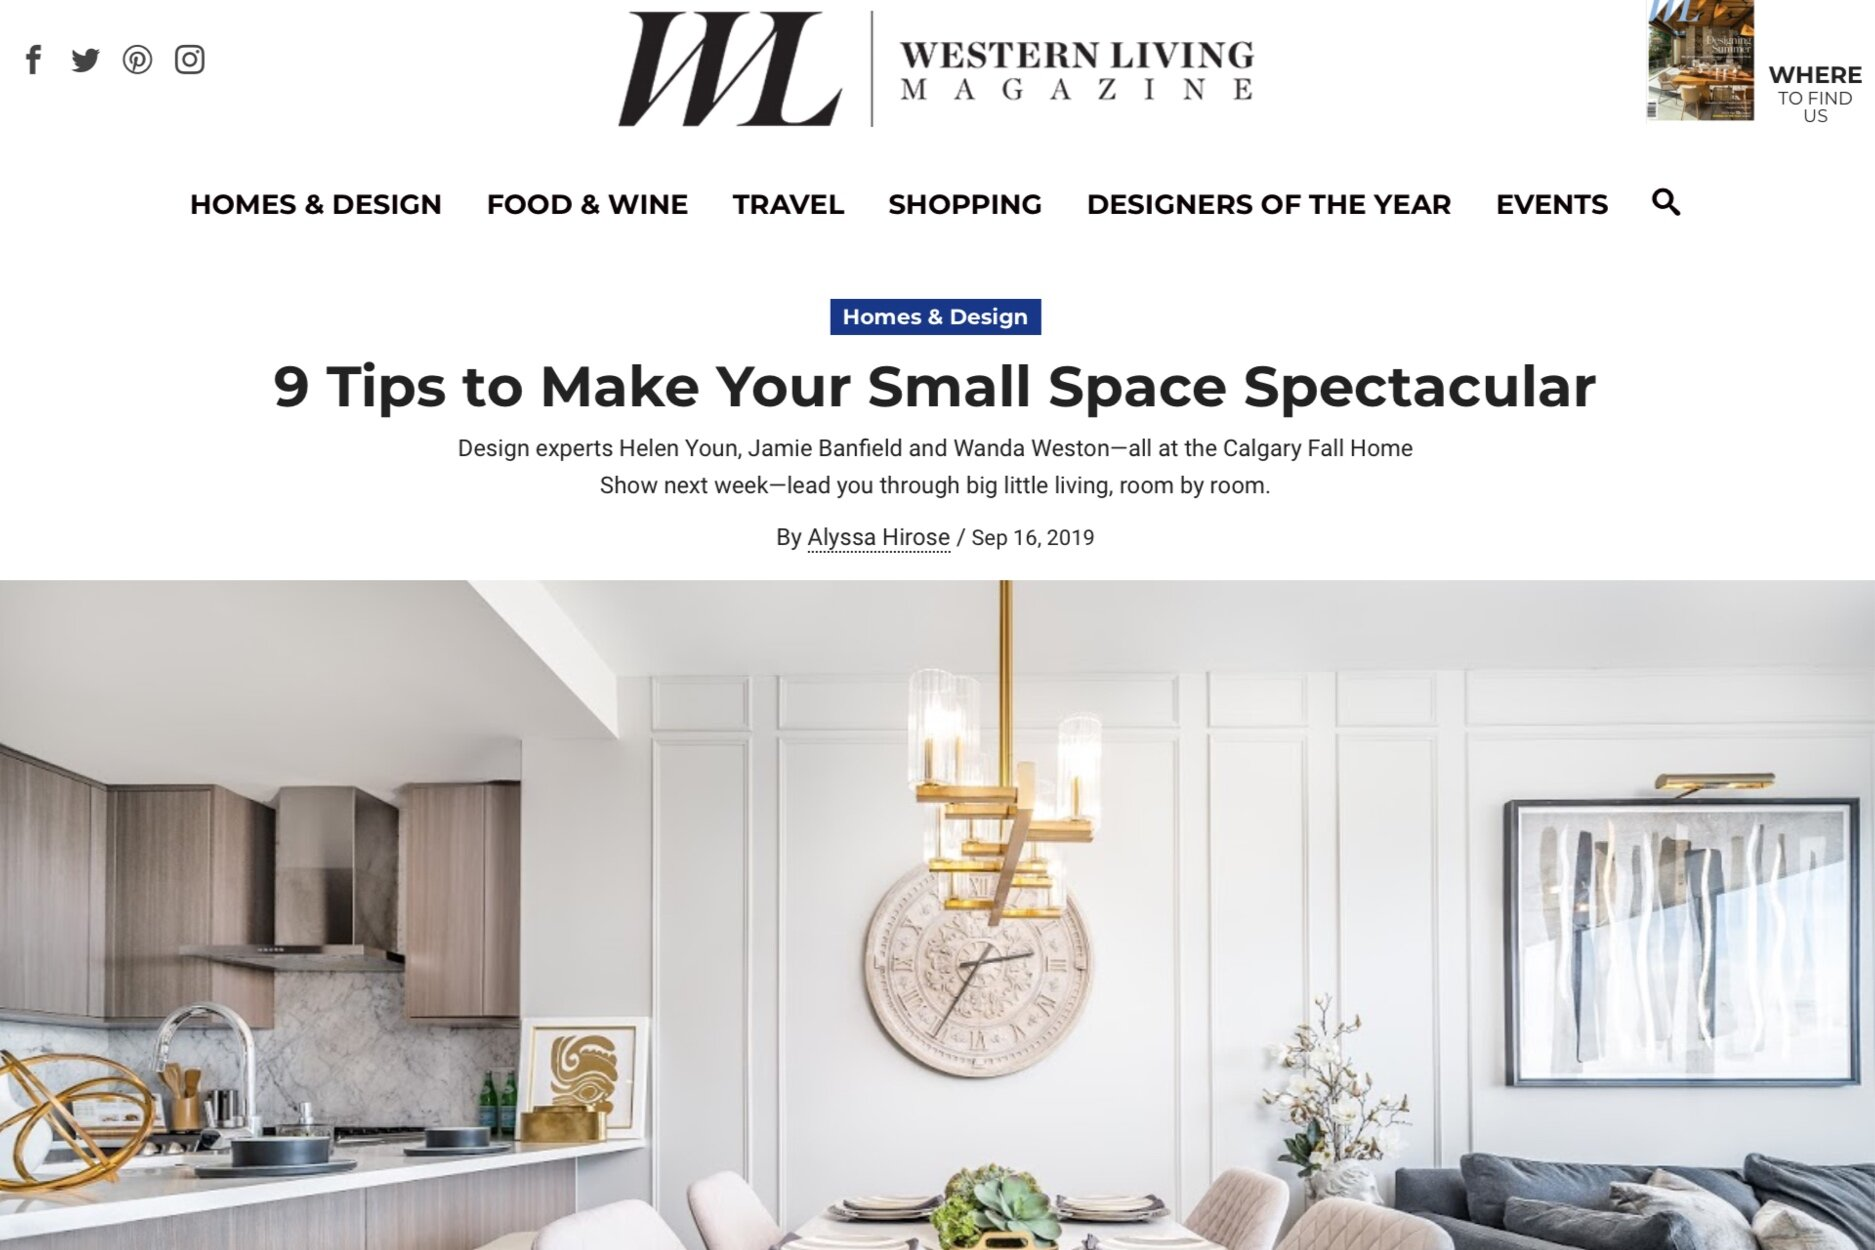 Western Living Magazine article 9 tips to make your small space spectacular